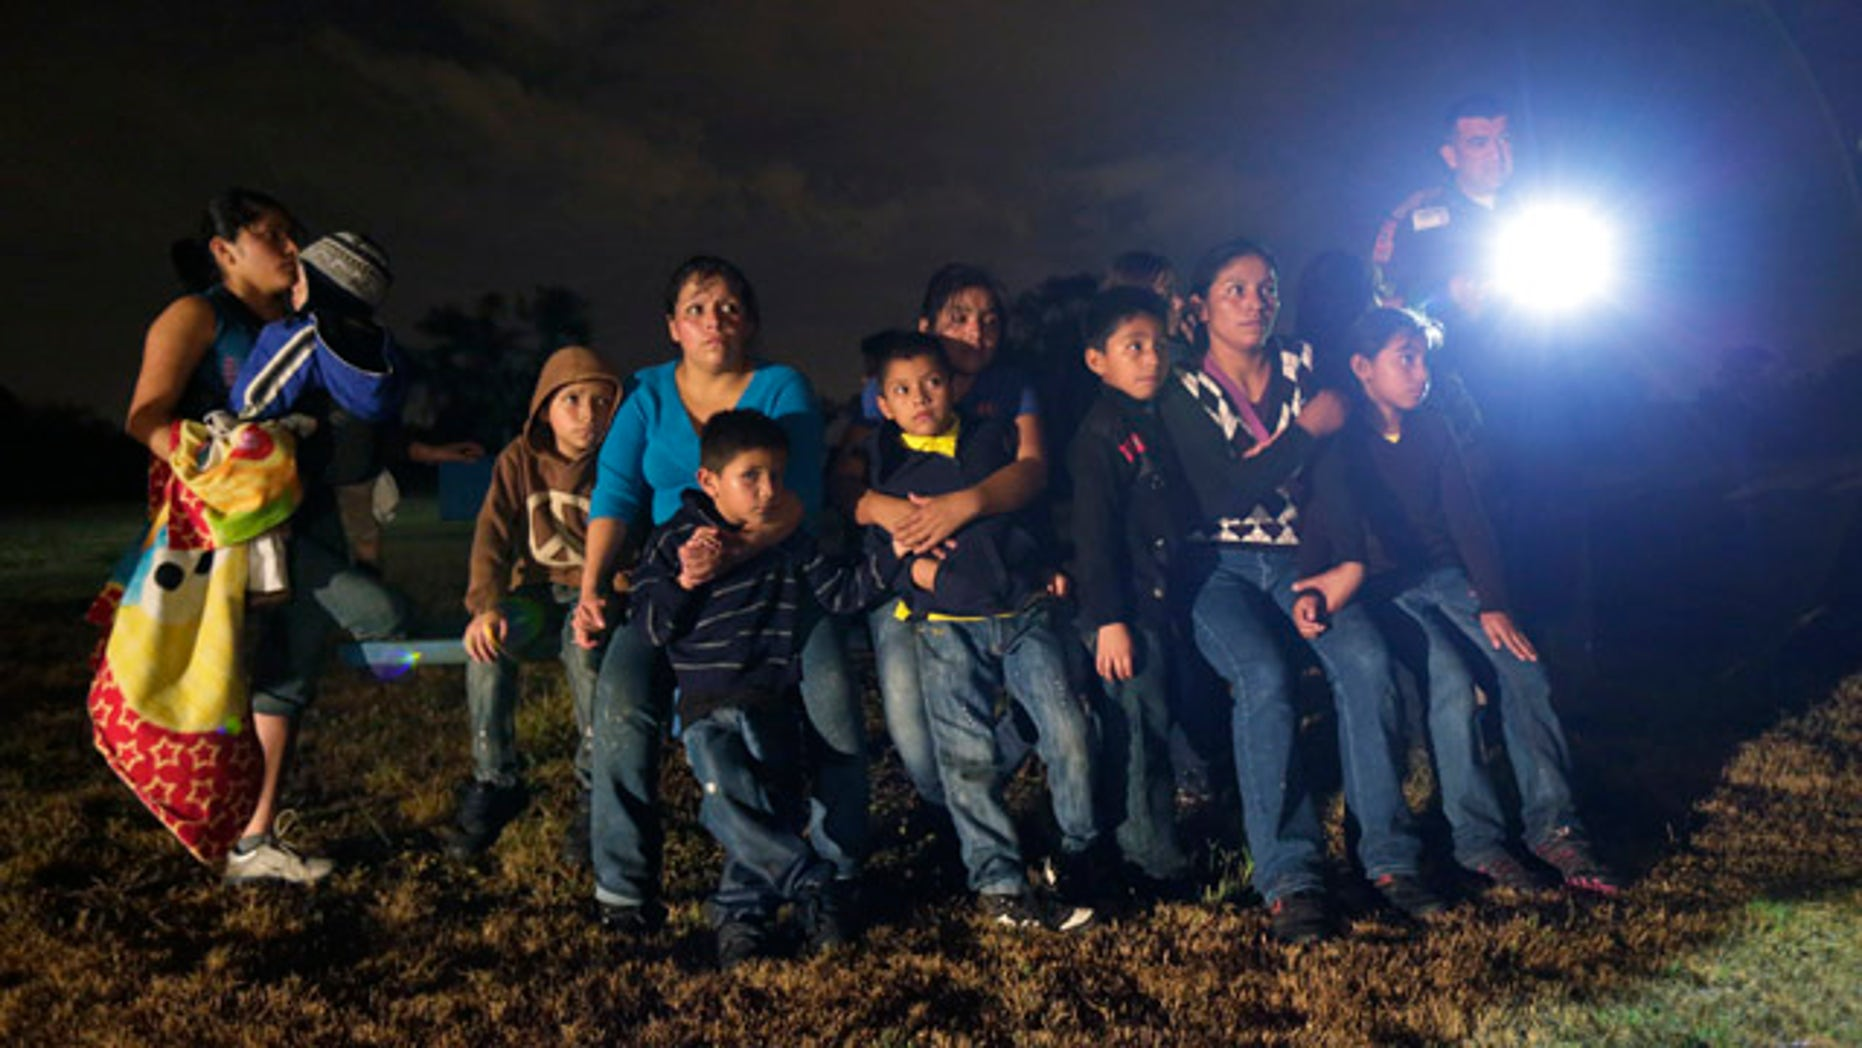 June 25, 2014: A group of immigrants from Honduras and El Salvador who crossed the U.S.-Mexico border illegally are stopped in Granjeno, Texas. (AP Photo/Eric Gay)